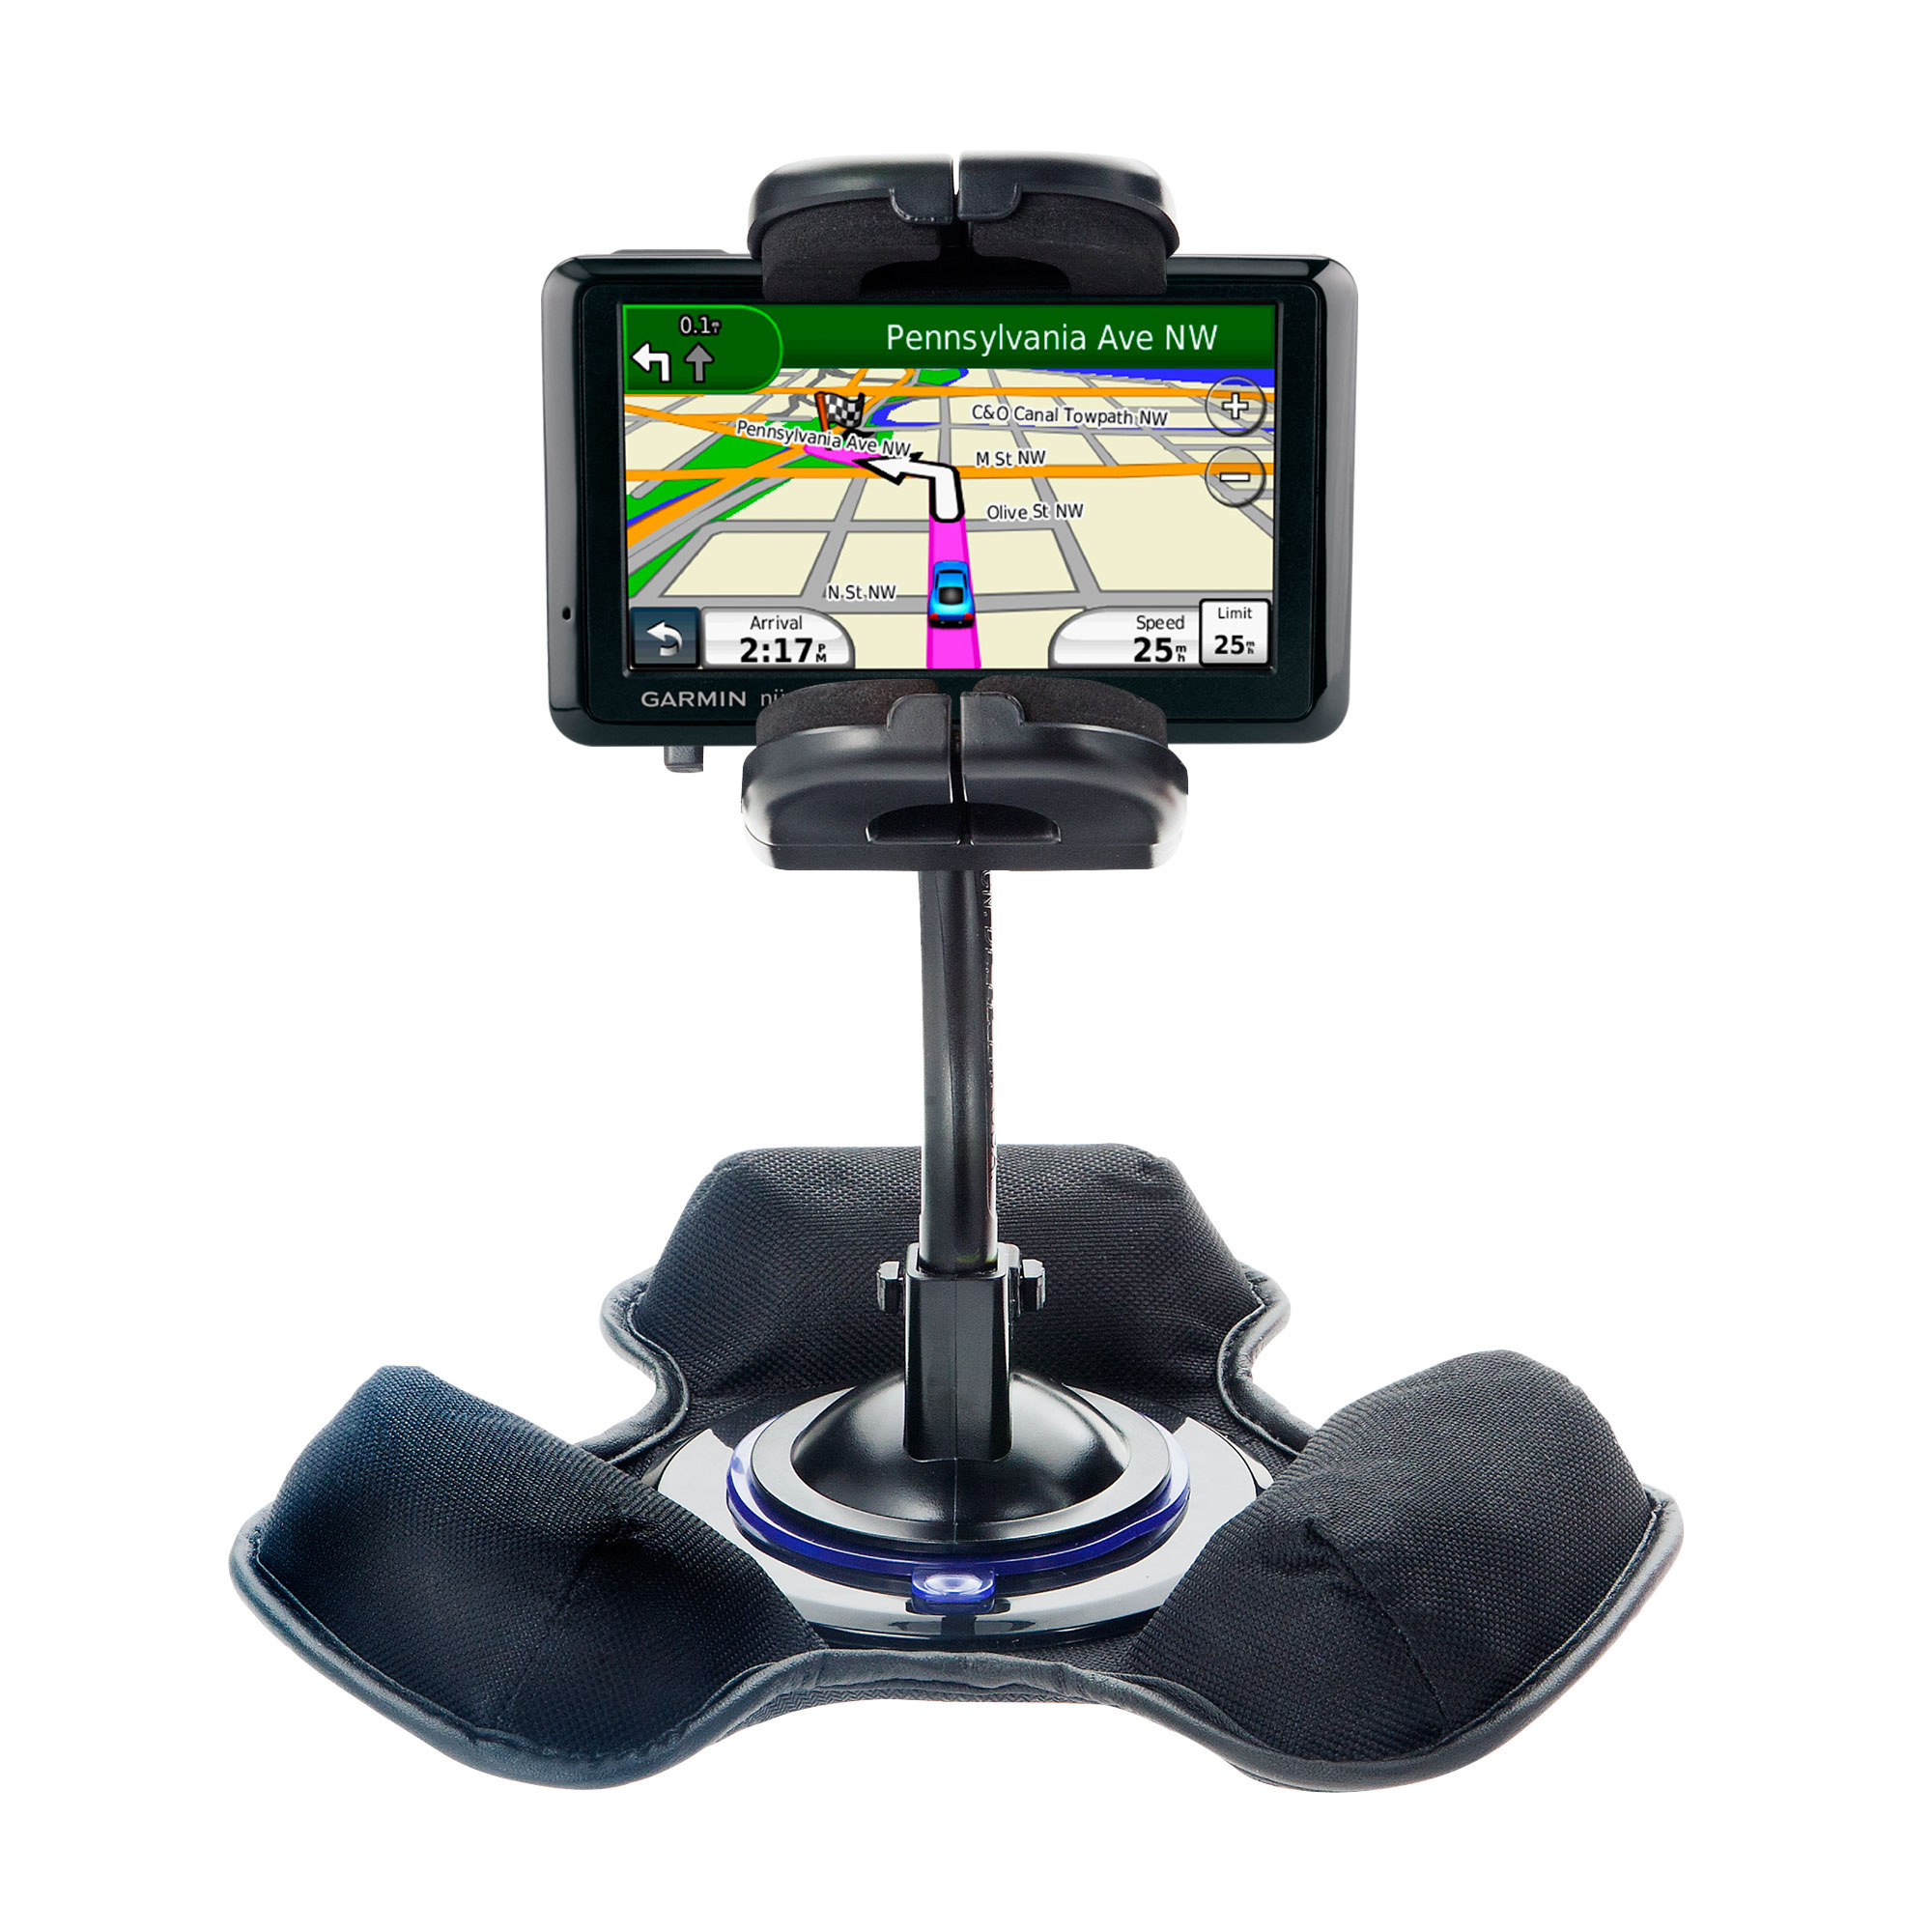 Dash and Windshield Holder compatible with the Garmin nuvi 205WT